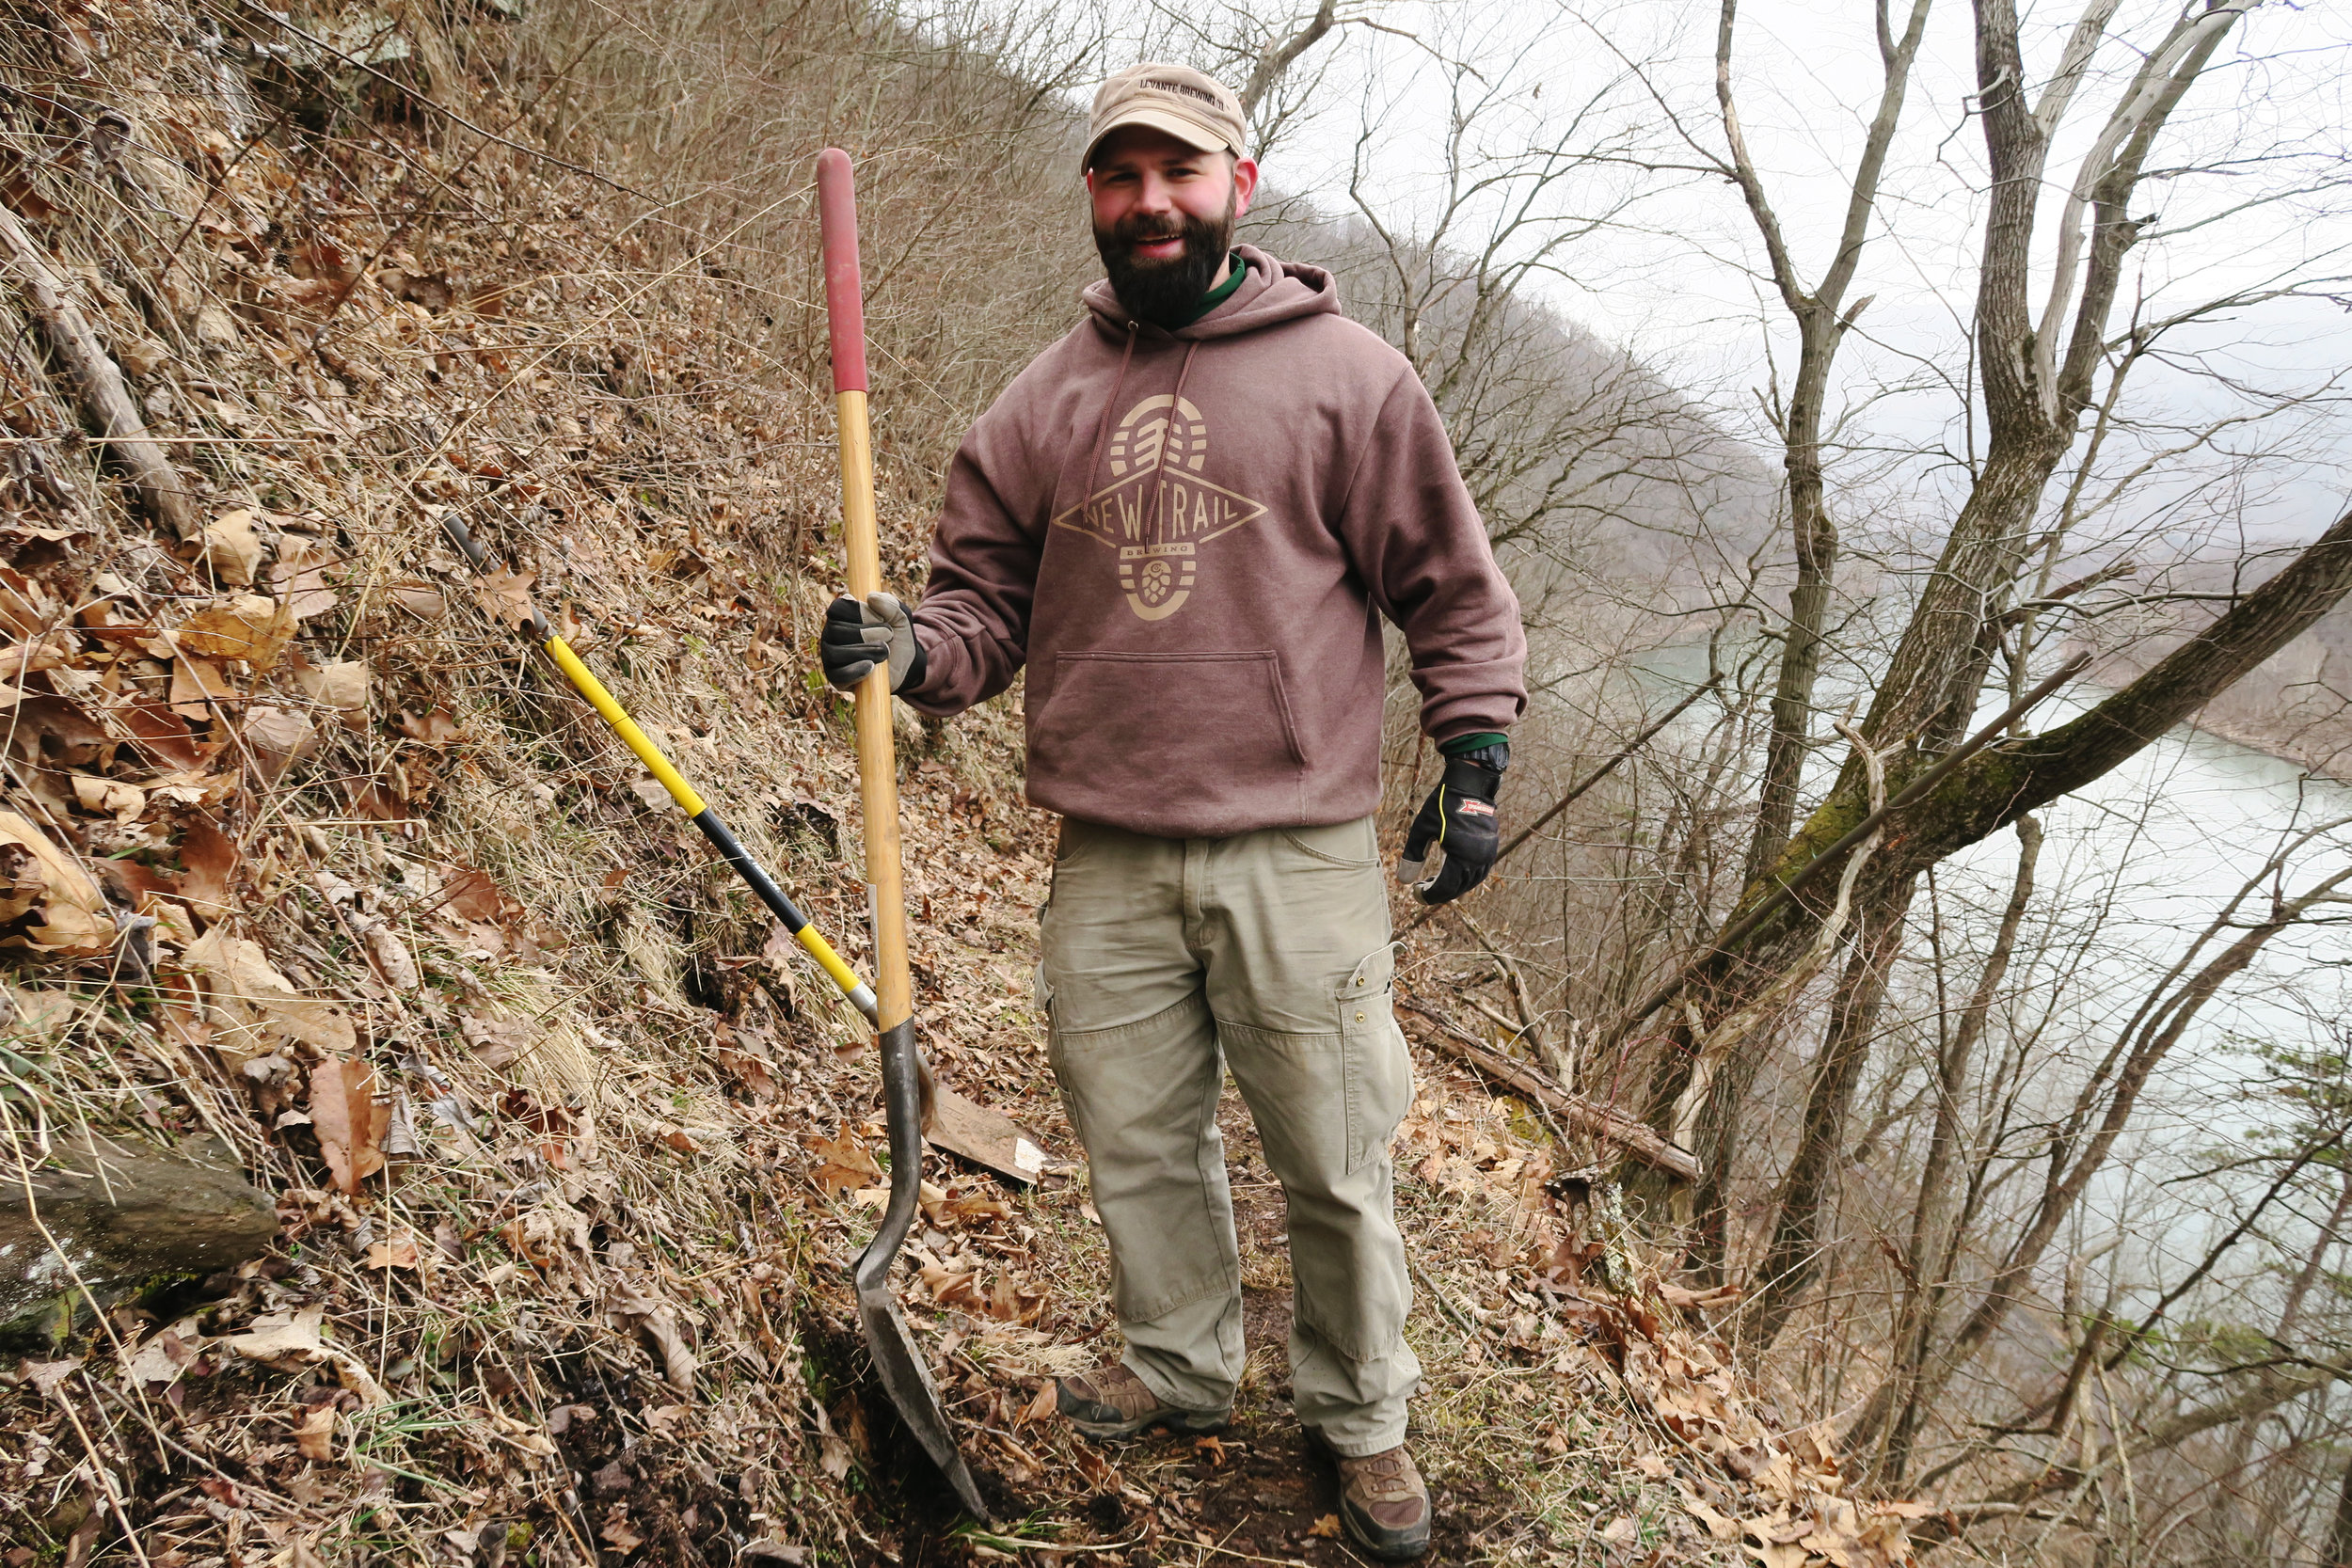 Our New Trail friends digging alongside the PA Trail Dogs at one of our Hyner work days.